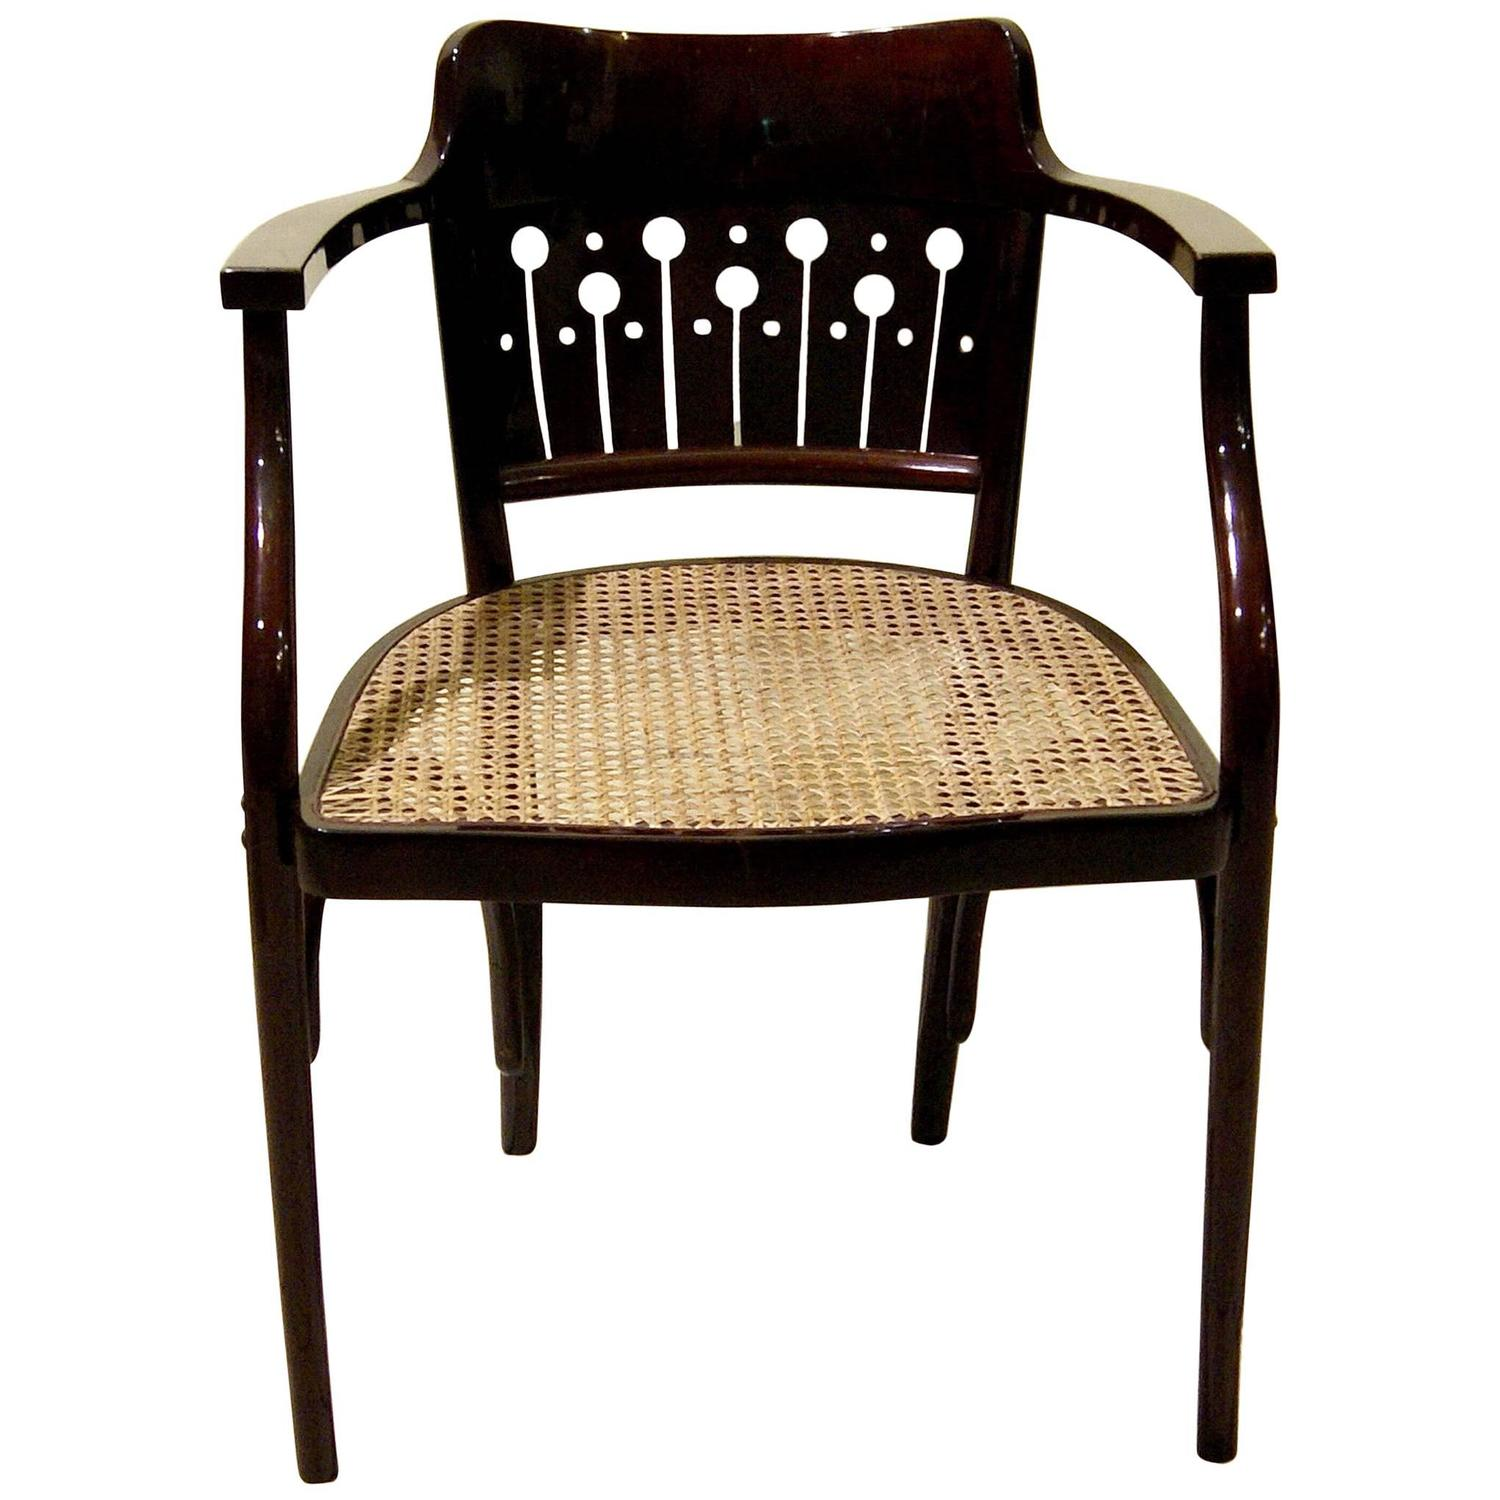 thonet vienna art nouveau otto wagner armchair number 6141 circa 1905 for sale at 1stdibs. Black Bedroom Furniture Sets. Home Design Ideas